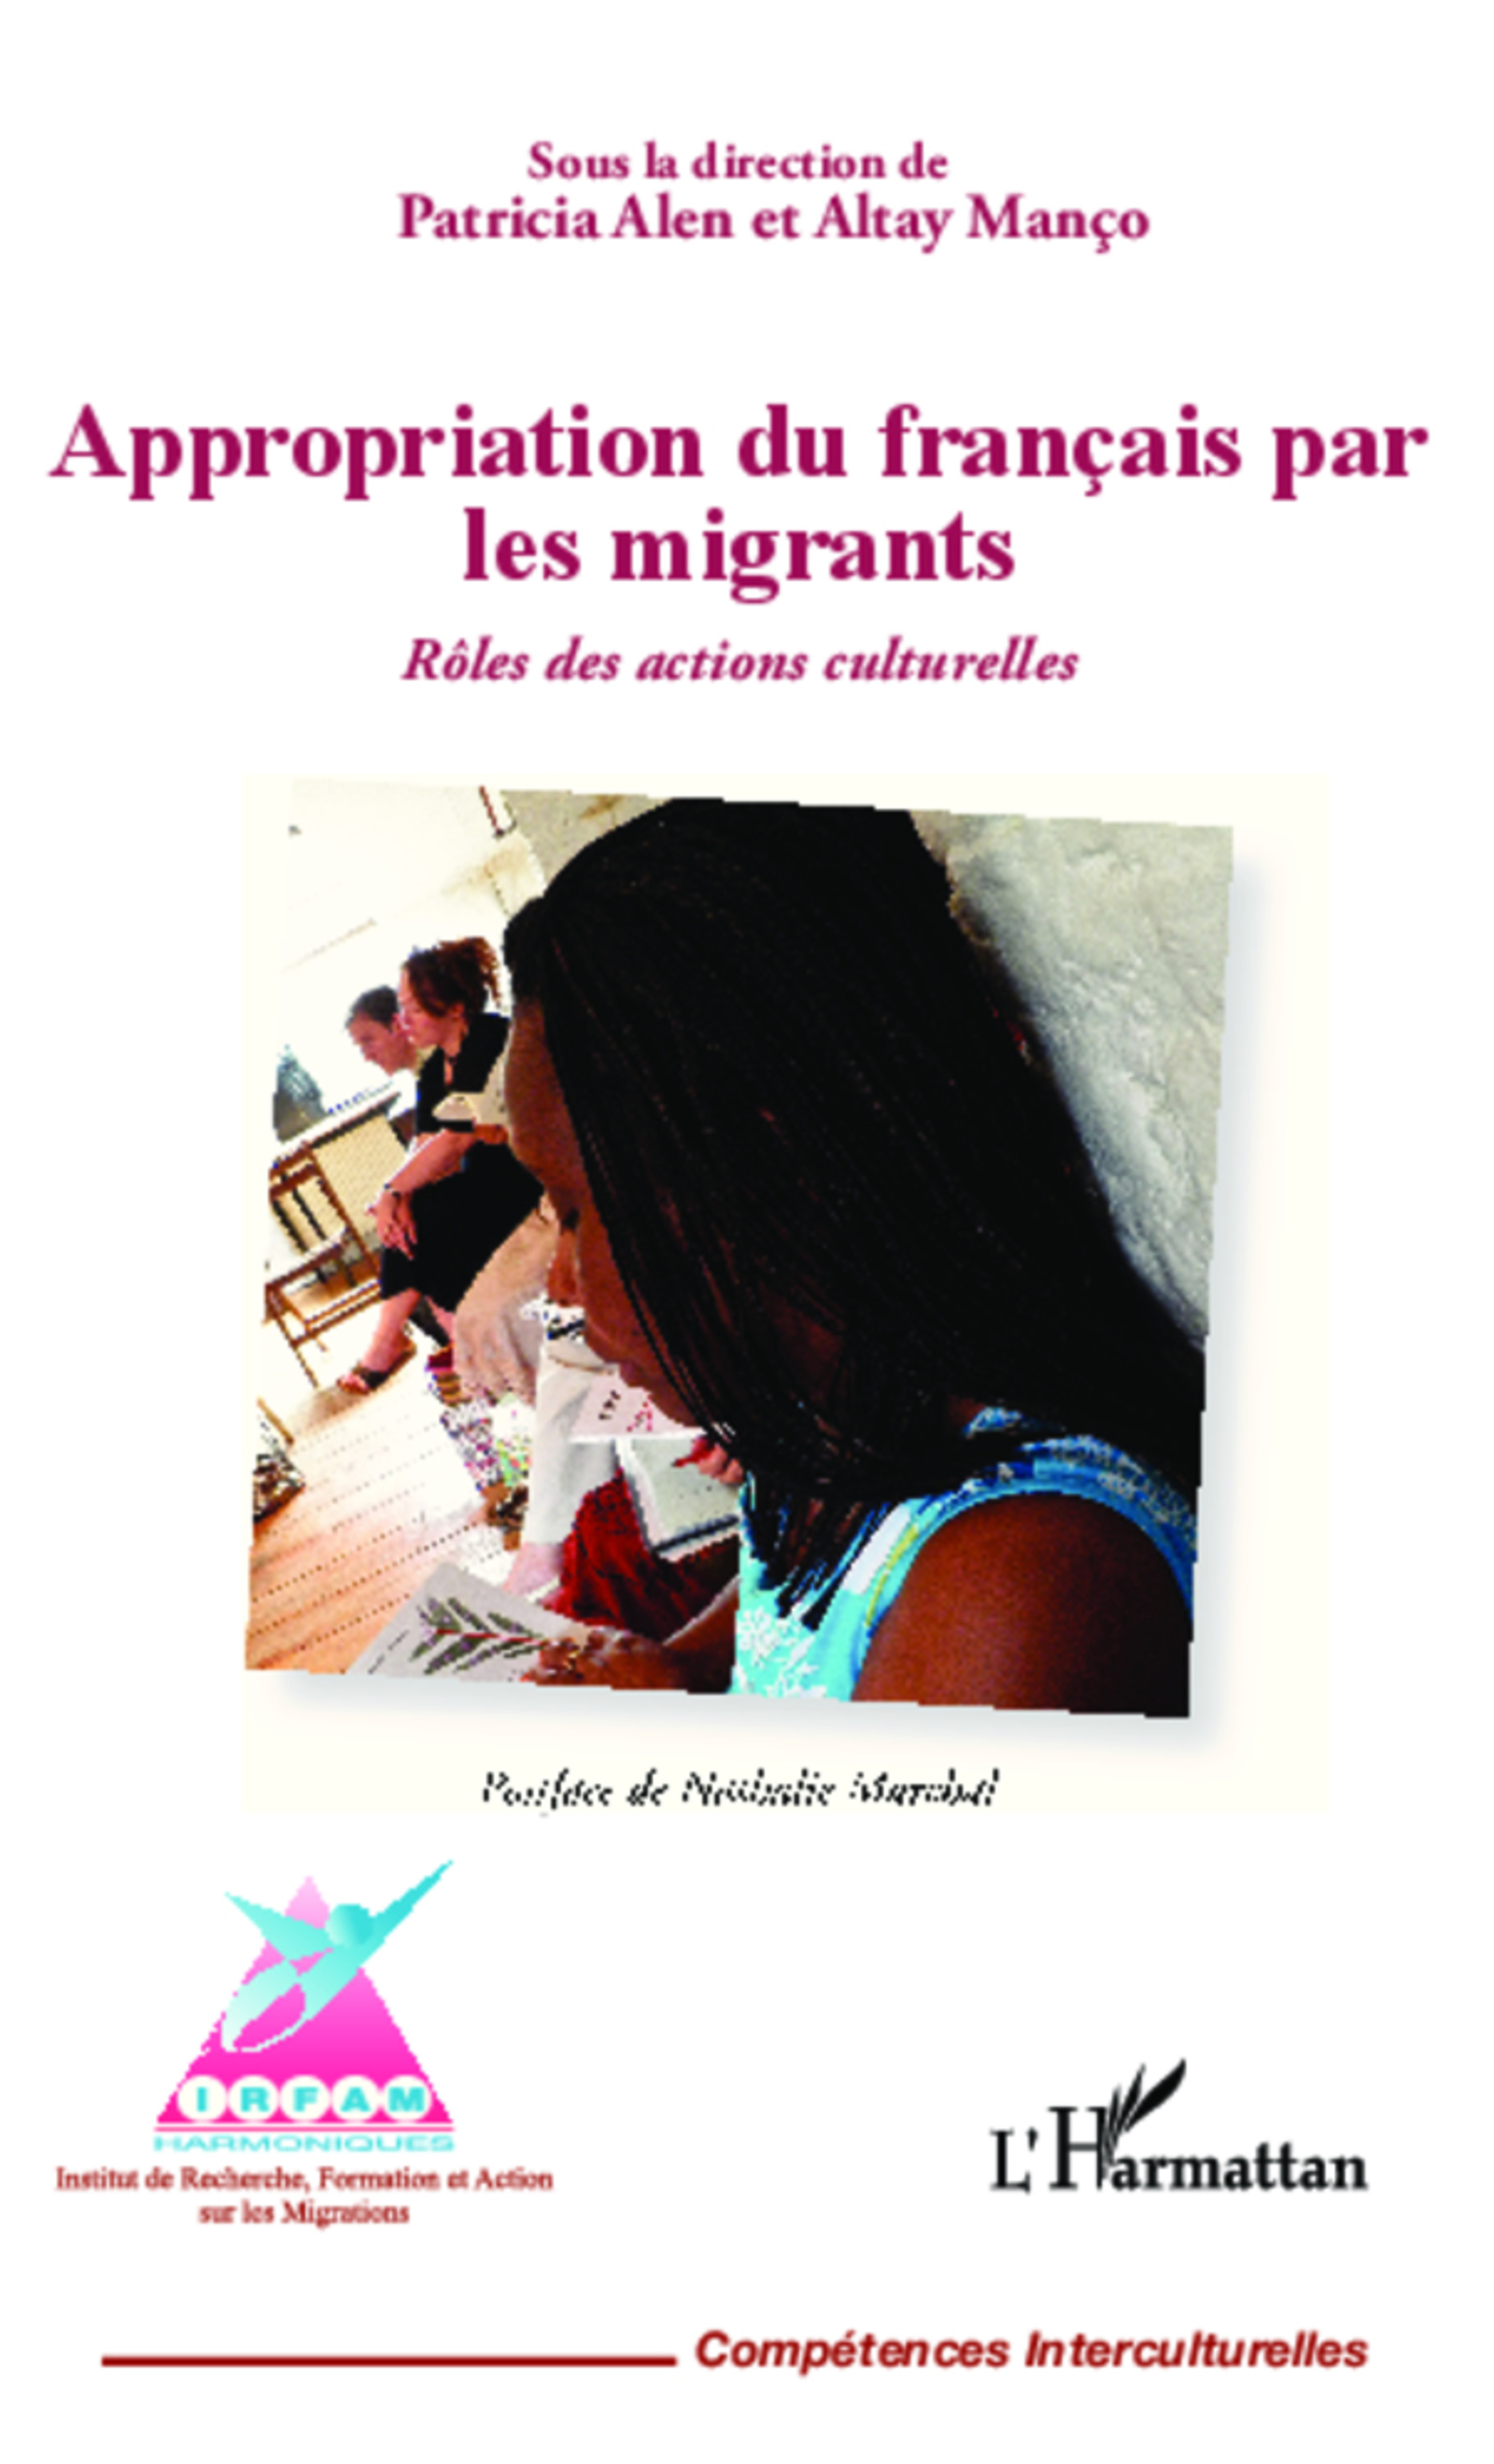 Appropriation du français par les migrants